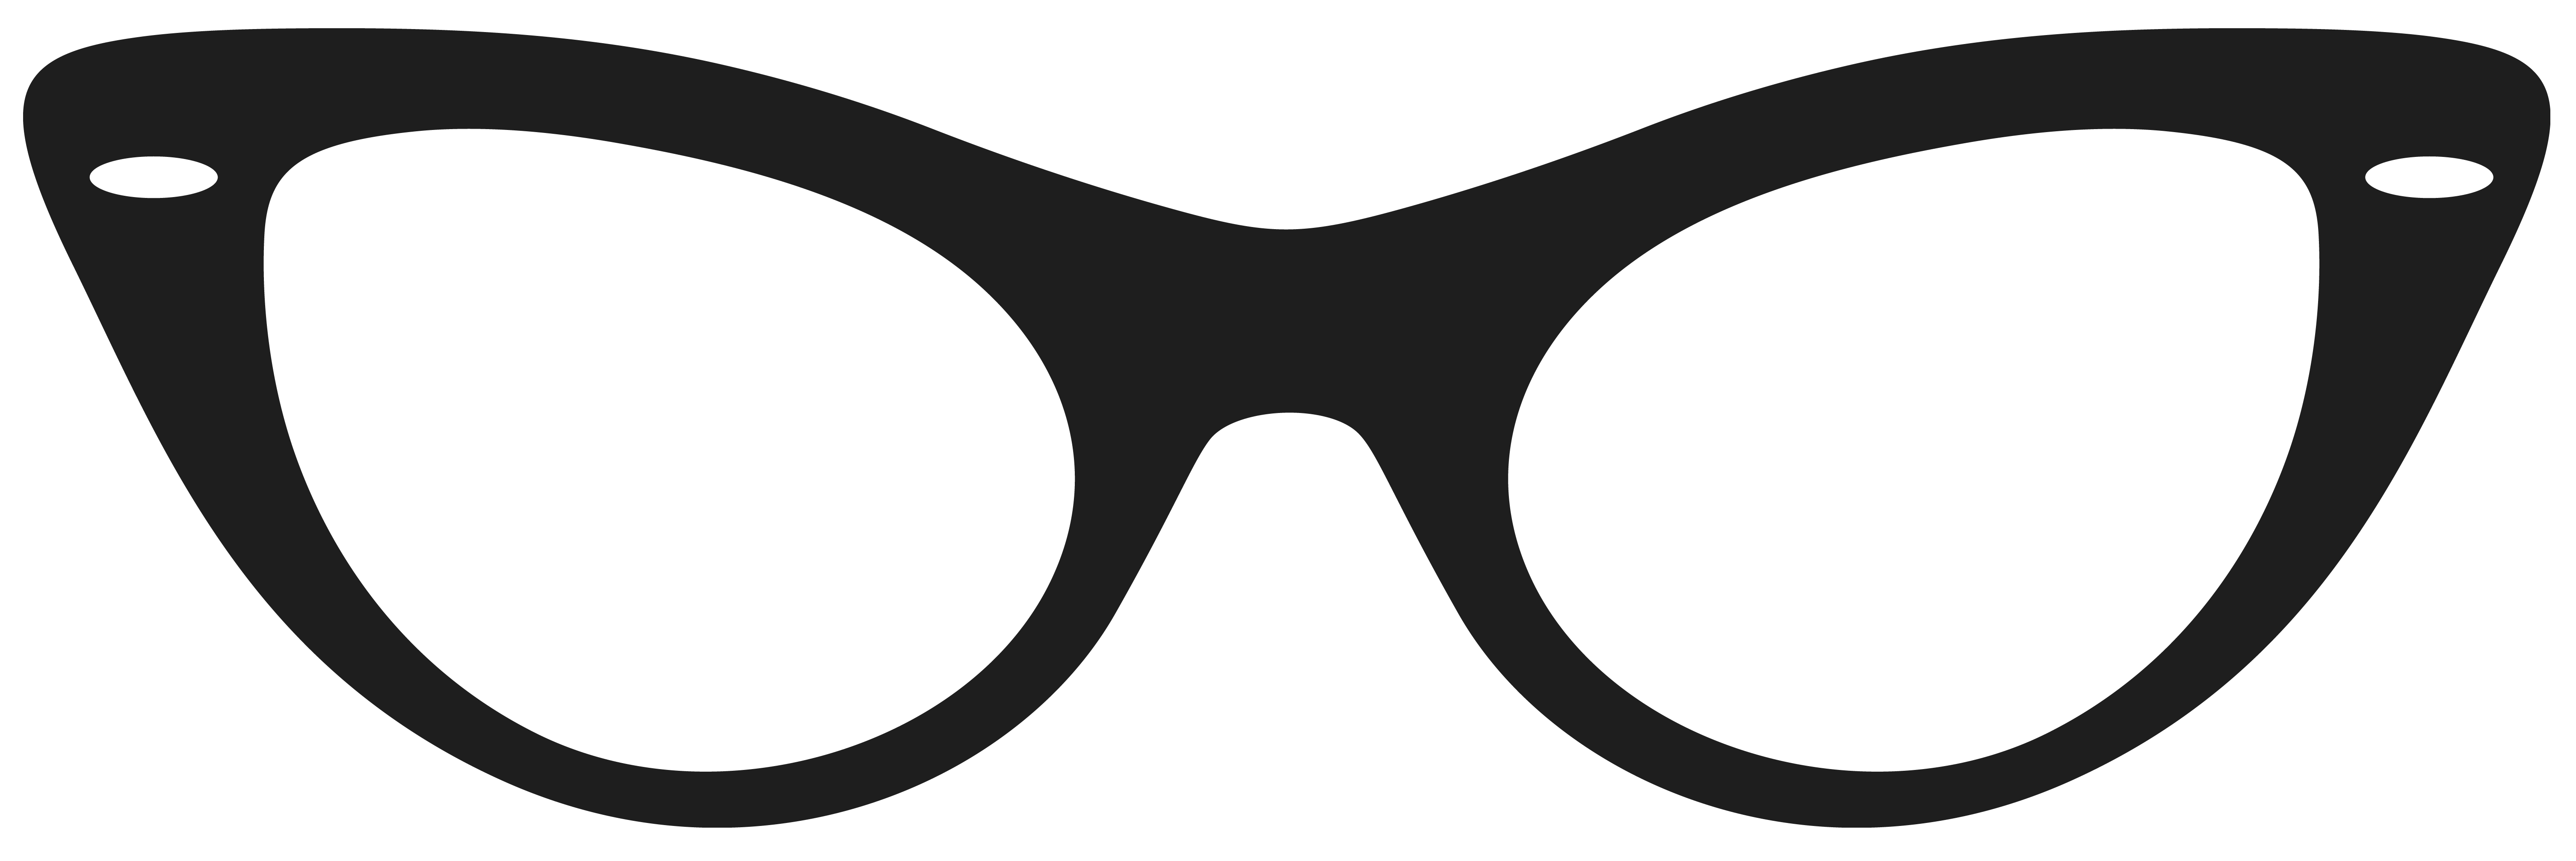 Glasses clipart #10, Download drawings